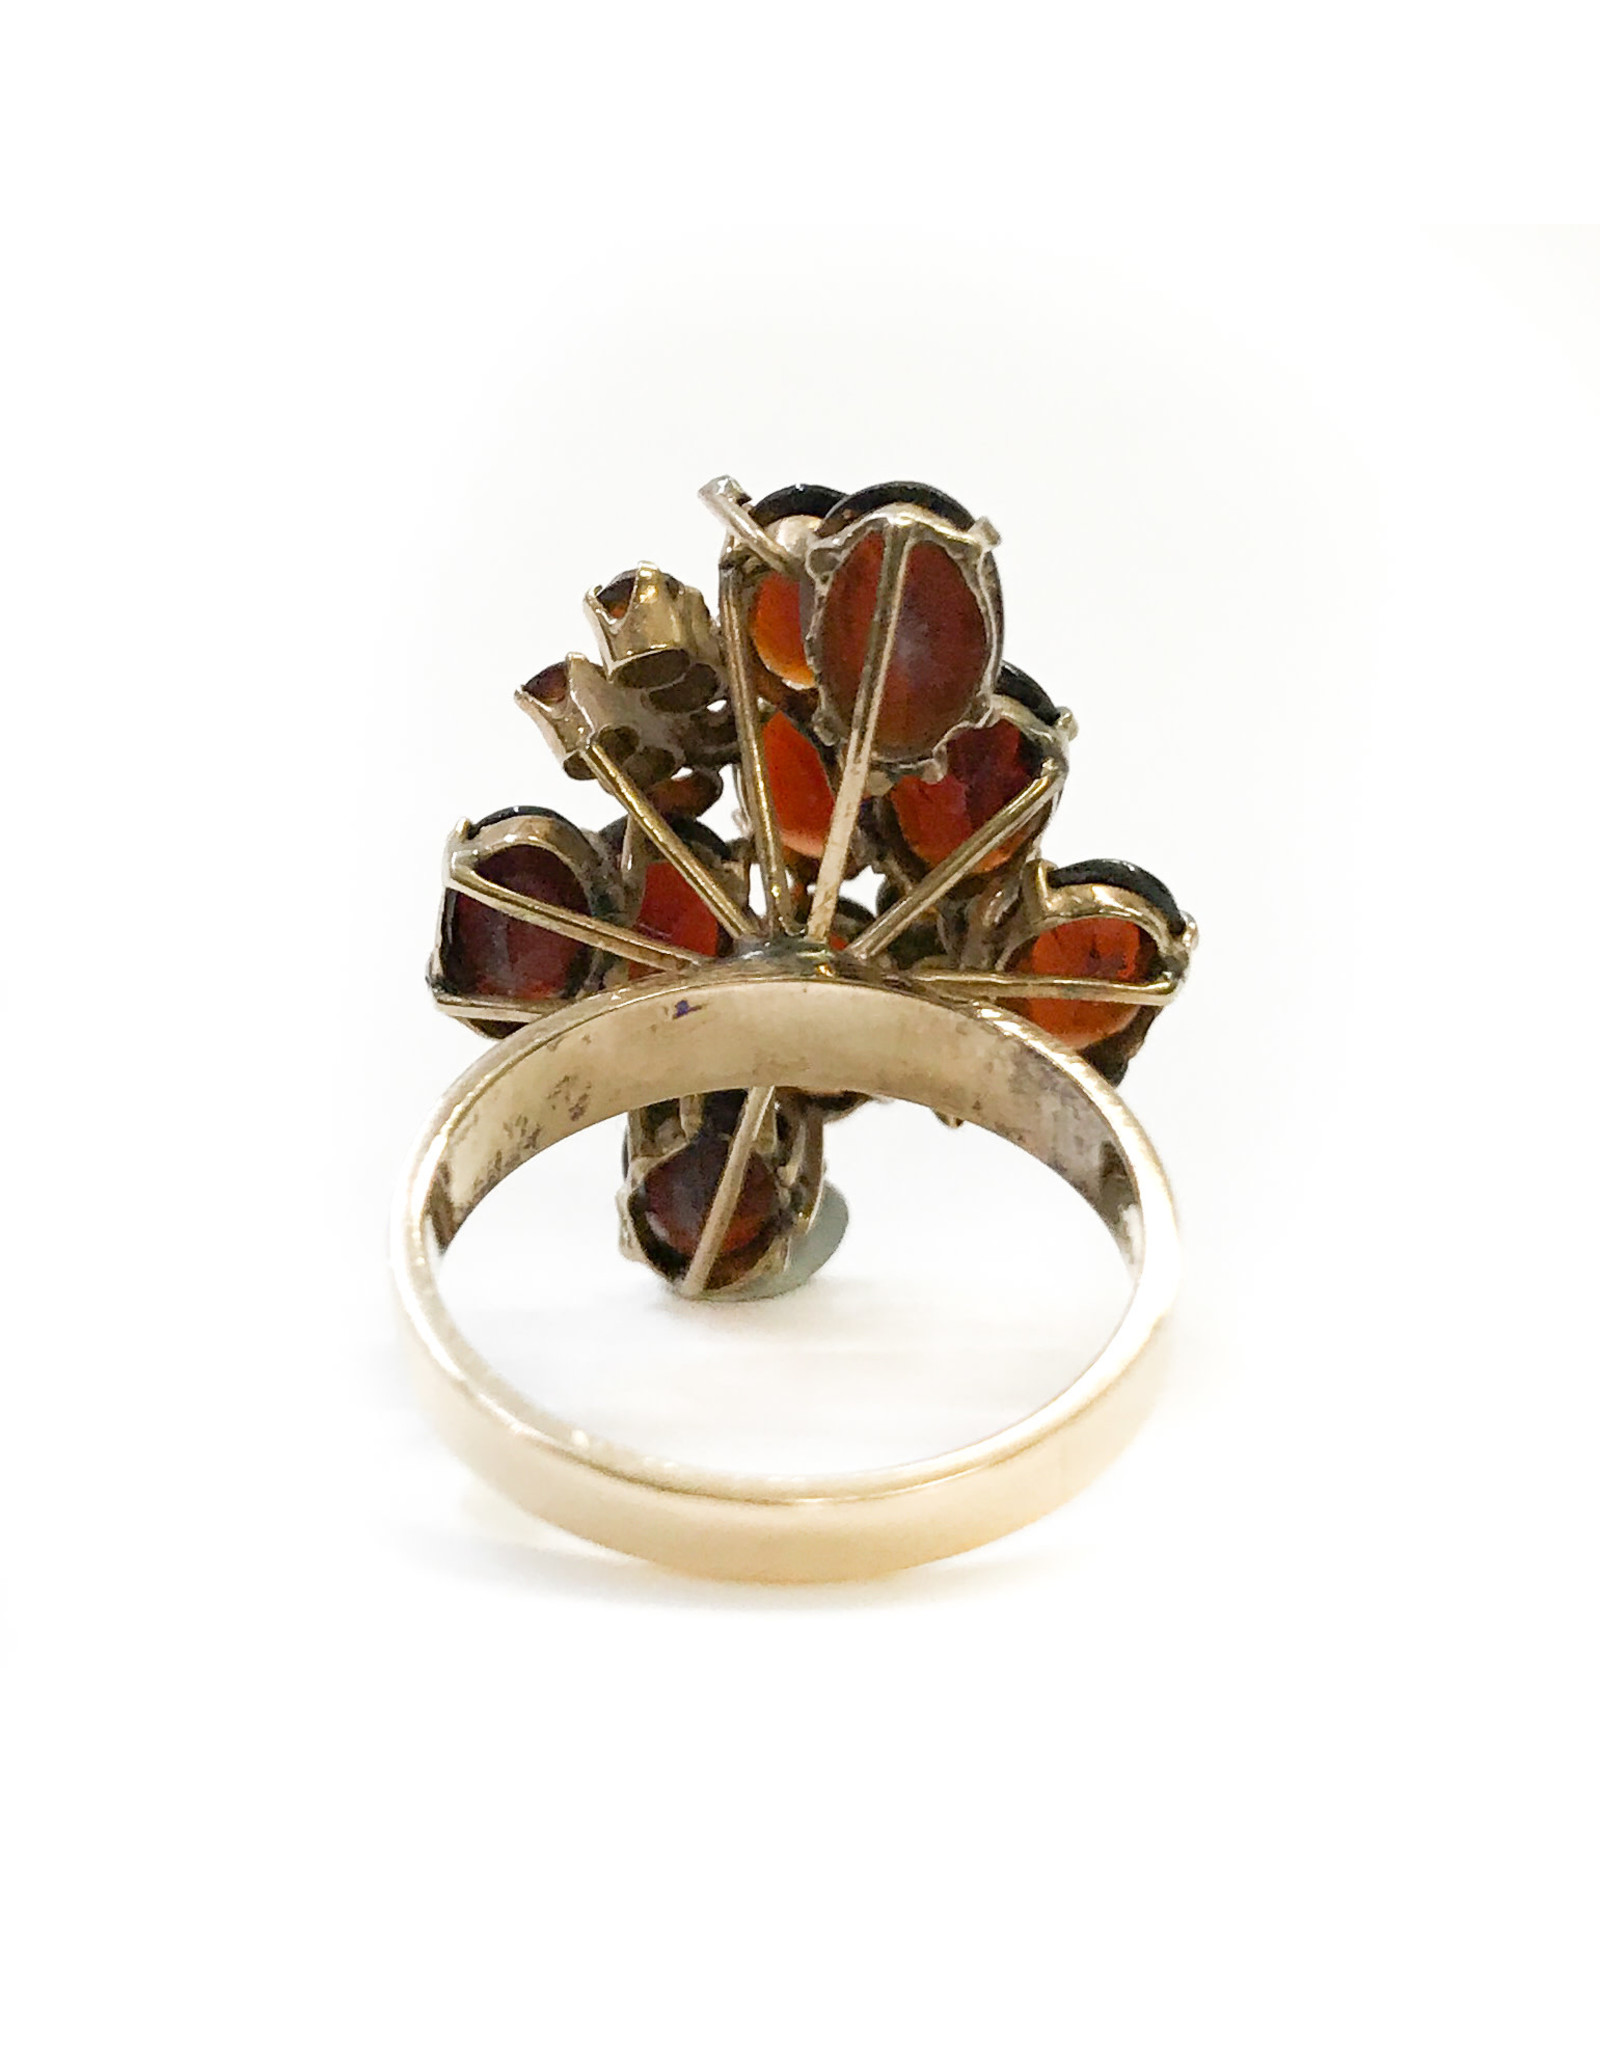 18K Gold Ring with 21 Garnets